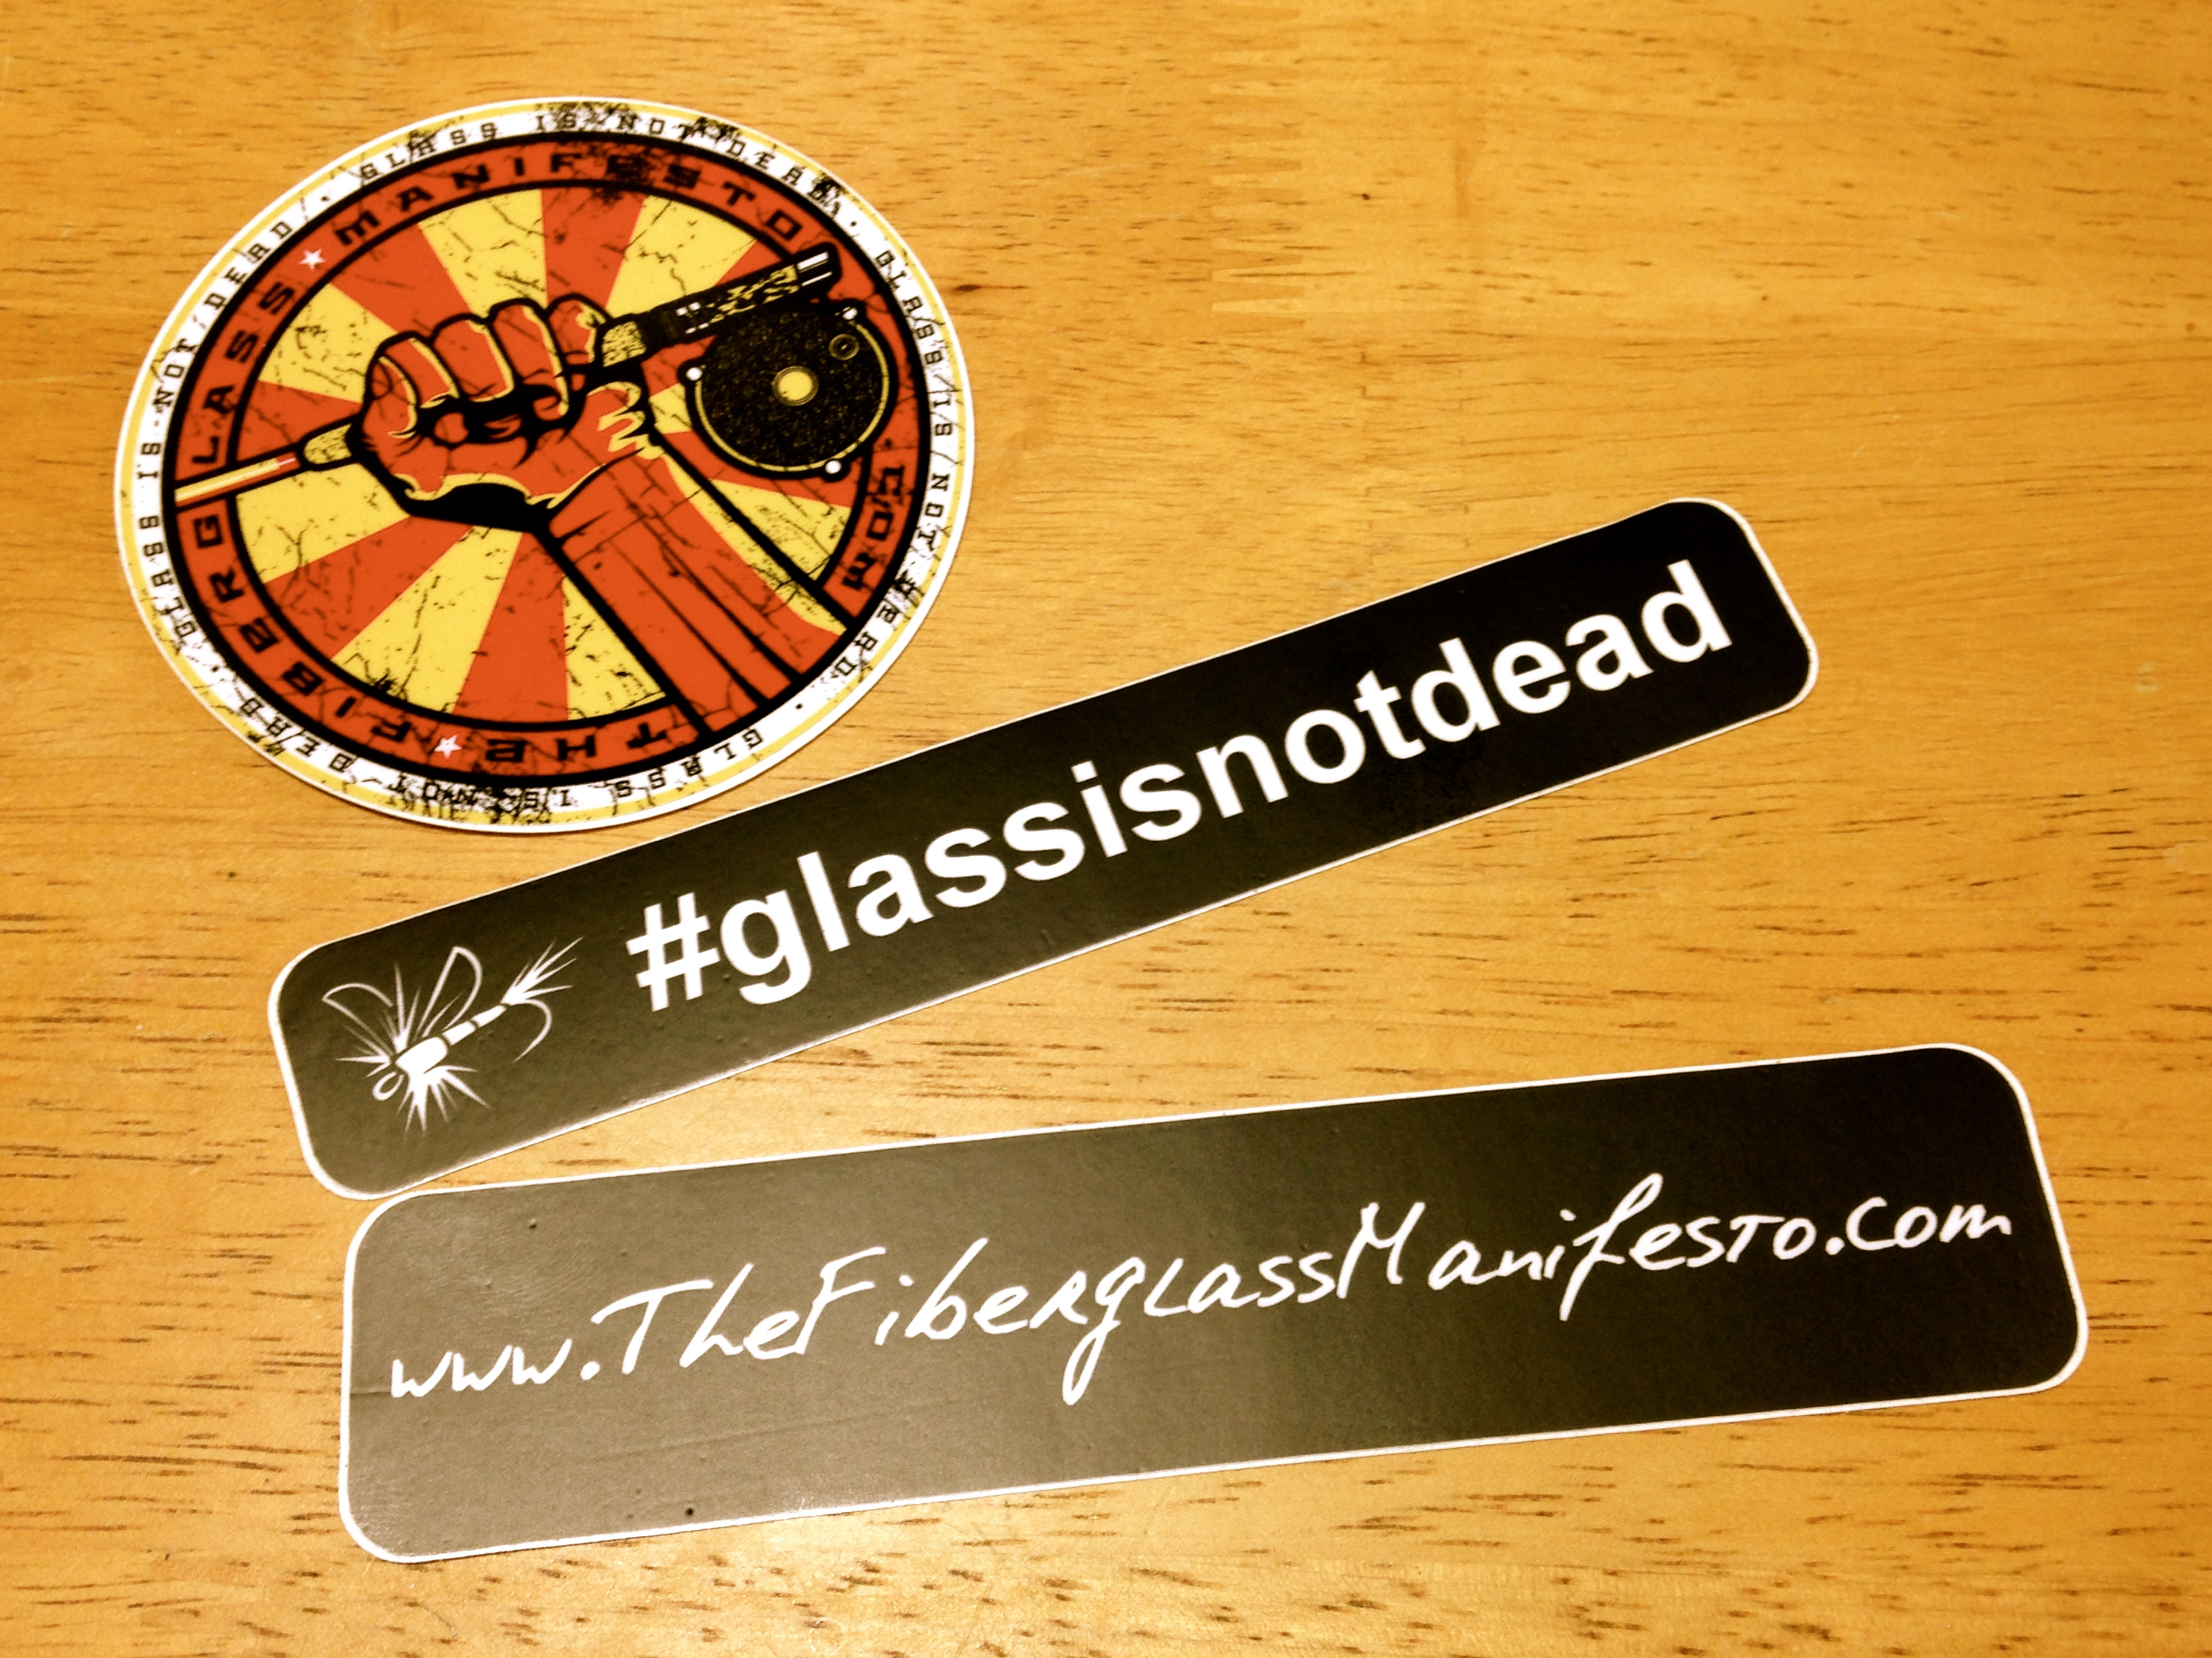 No Disrespect To Camerons Sweet Sticker Swag But The Truly Big News Is That I Am Now Proud Owner Of My First Custom Build Glass Rod Courtesy Shane